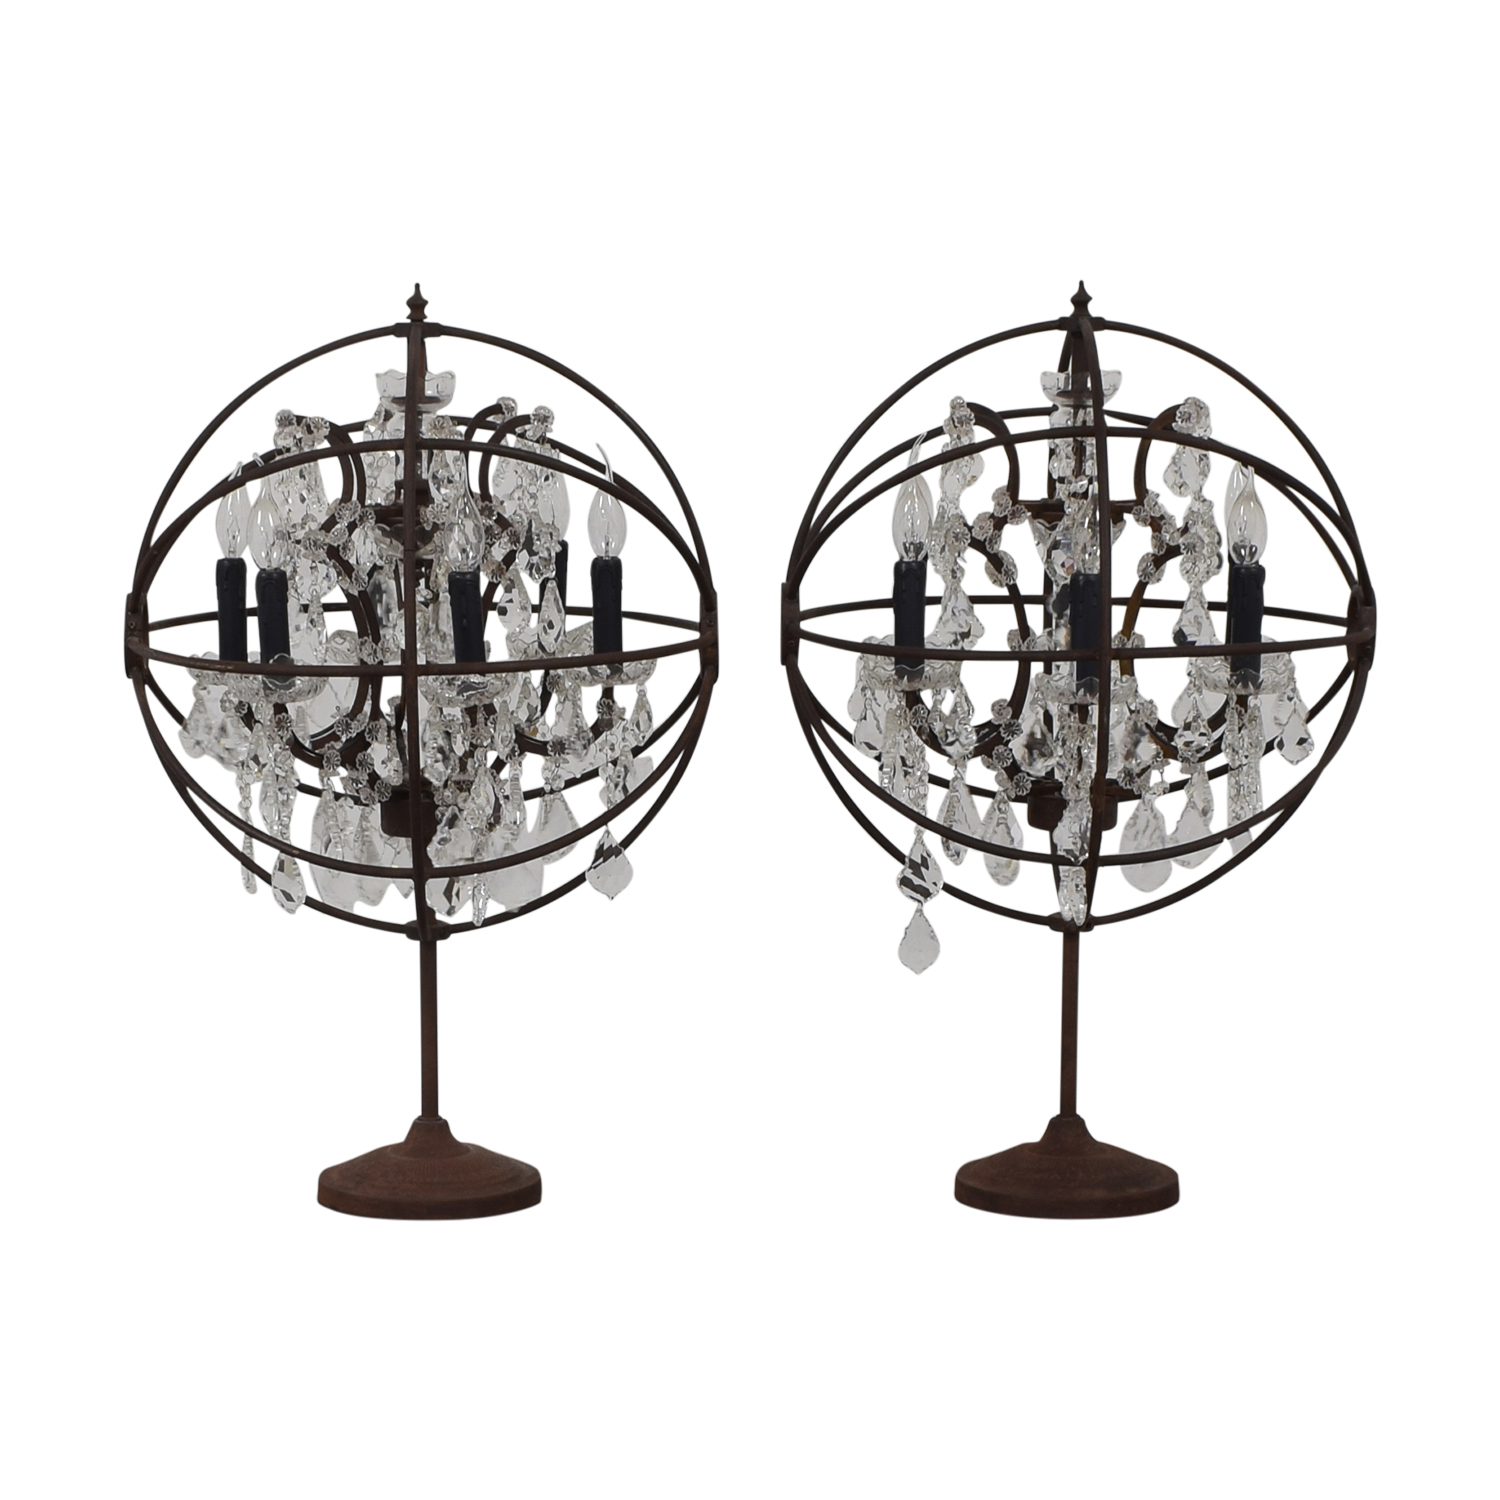 Restoration Hardware Restoration Hardware Orb Crystal Table Lamps price